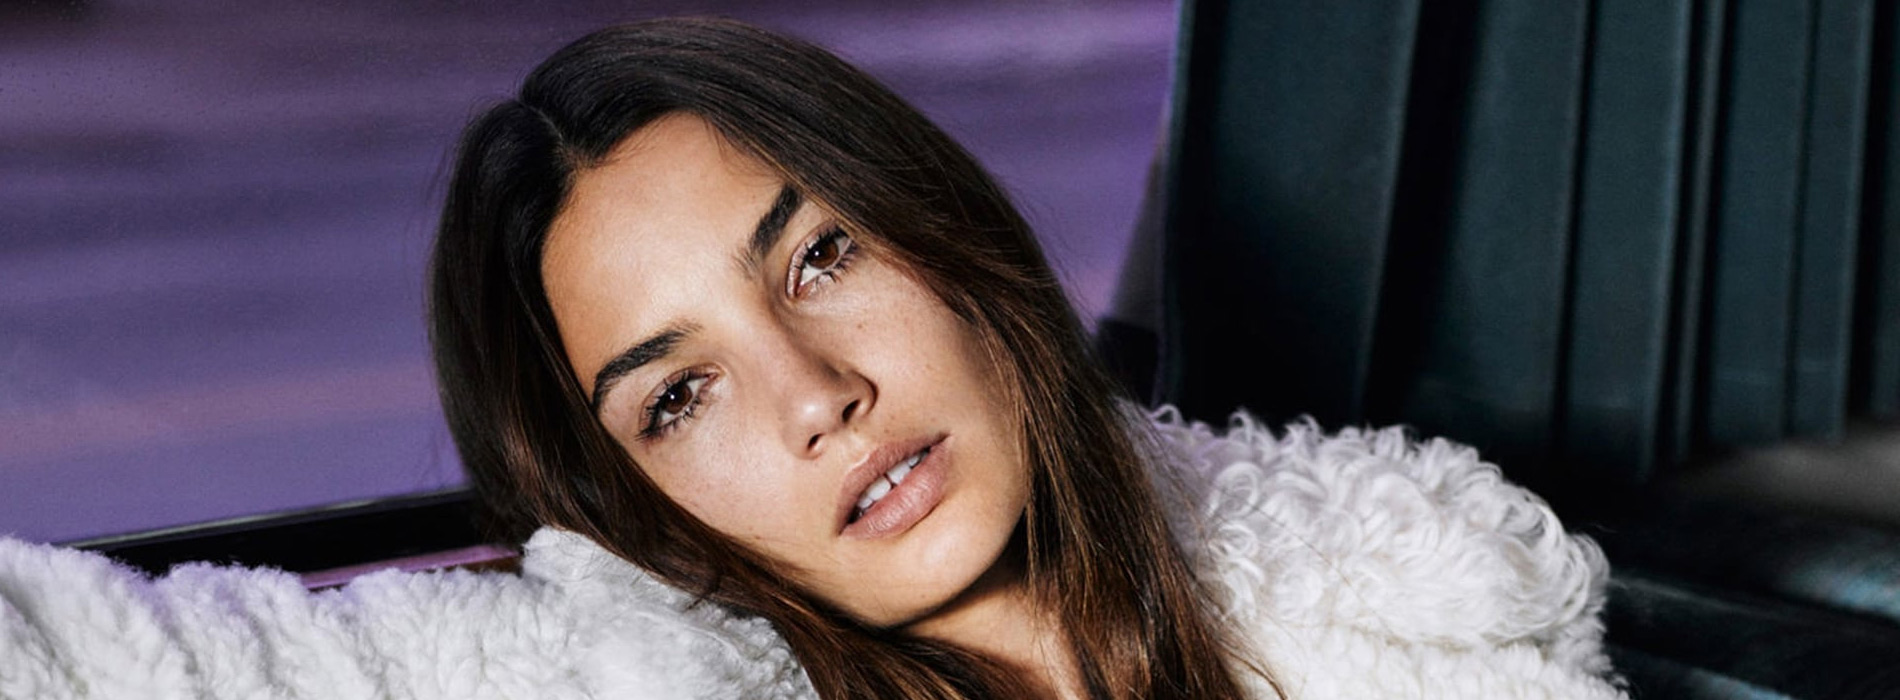 Lily Aldridge Net Worth, Private Life, Career And Biography Info 8